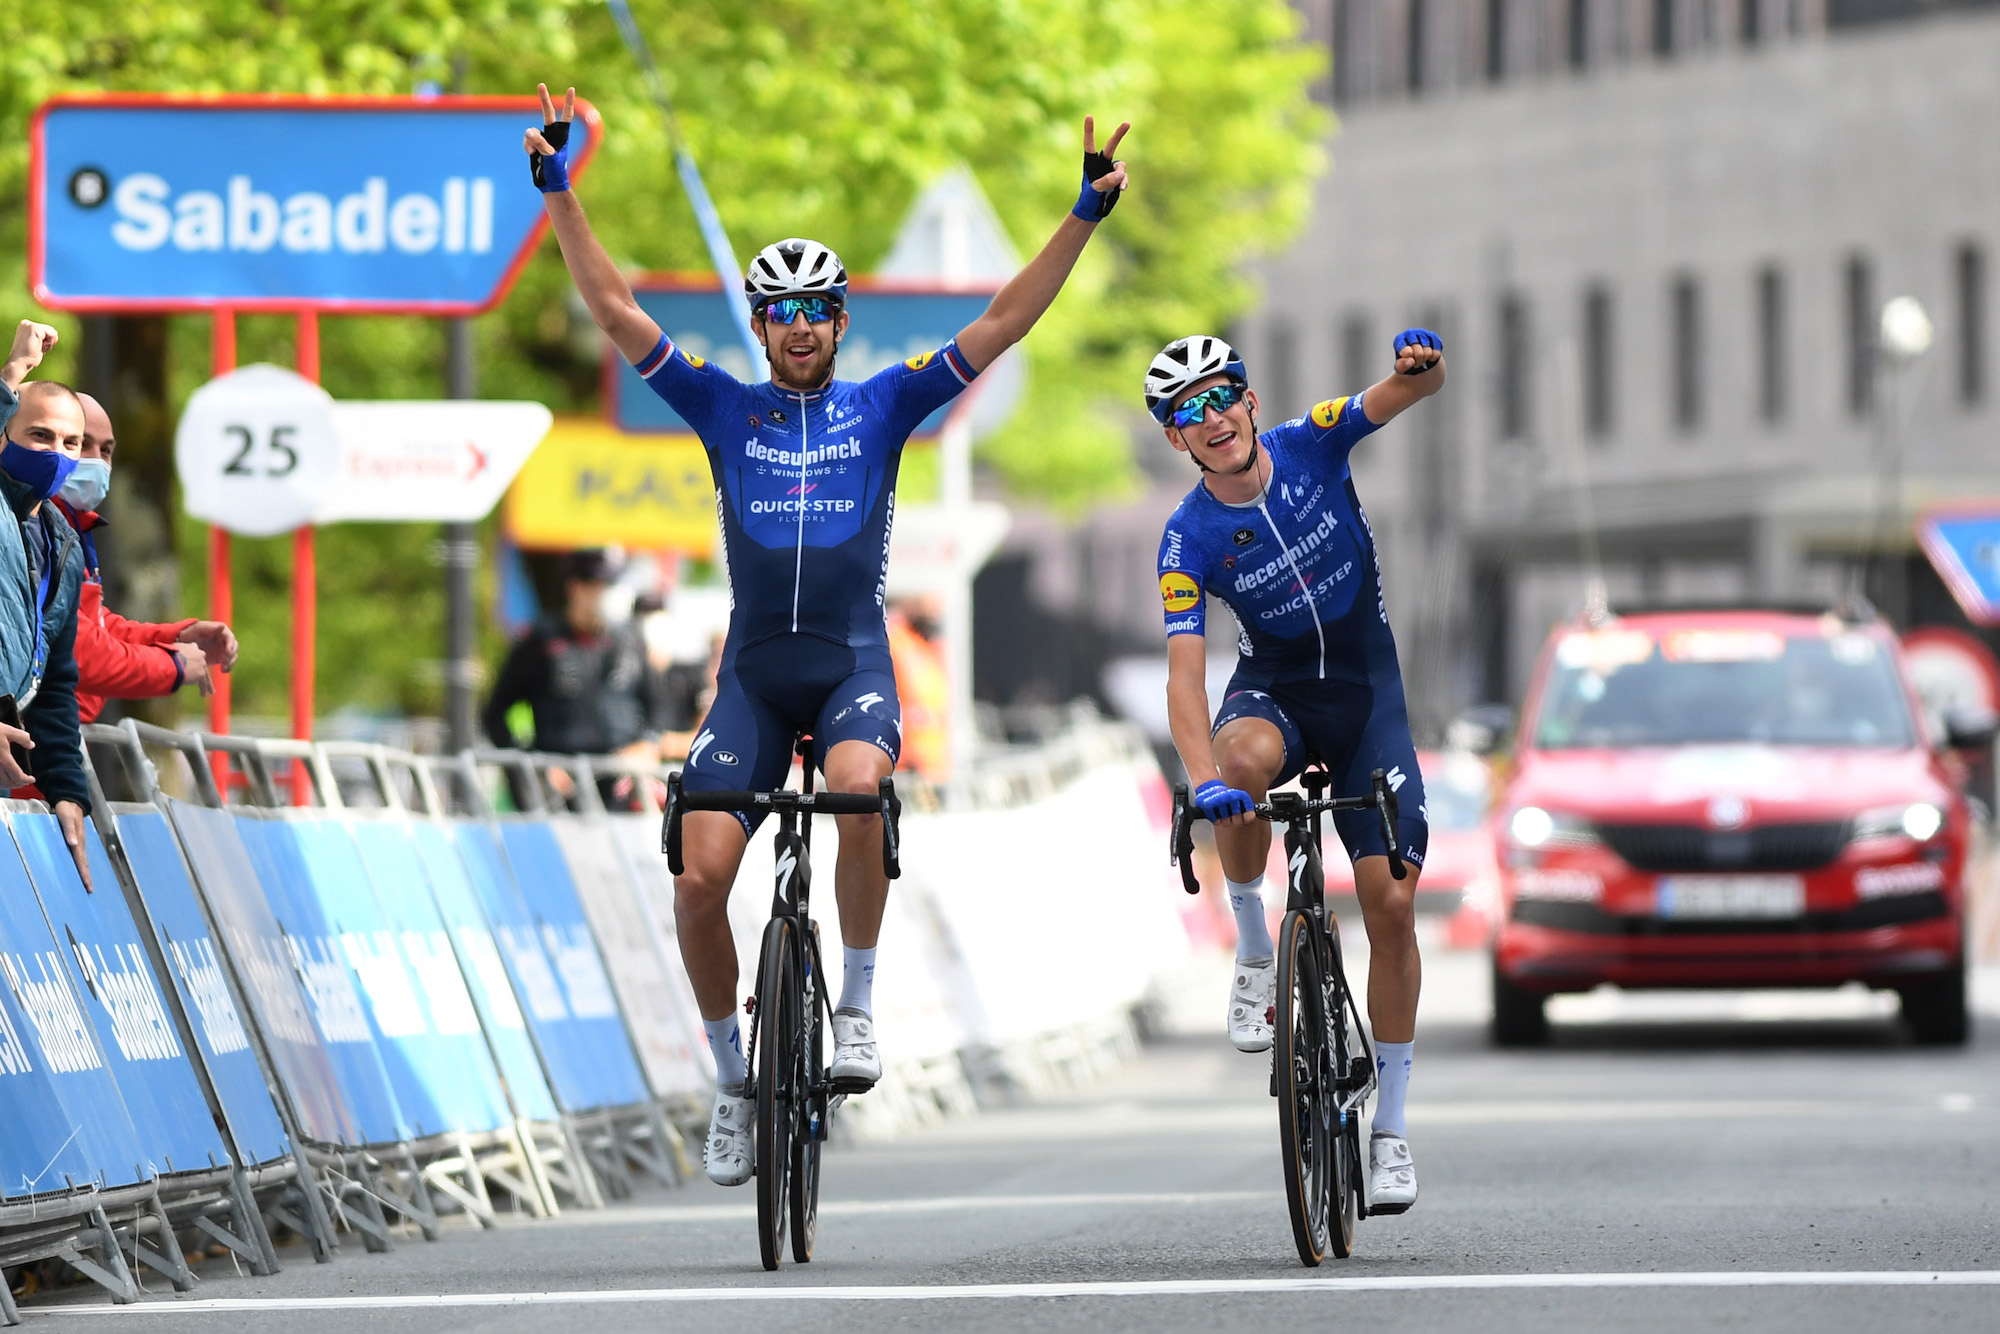 Mikkel Honoré takes stage five of Tour of the Basque Country 2021 in amazing Deceuninck – Quick-Step one-two